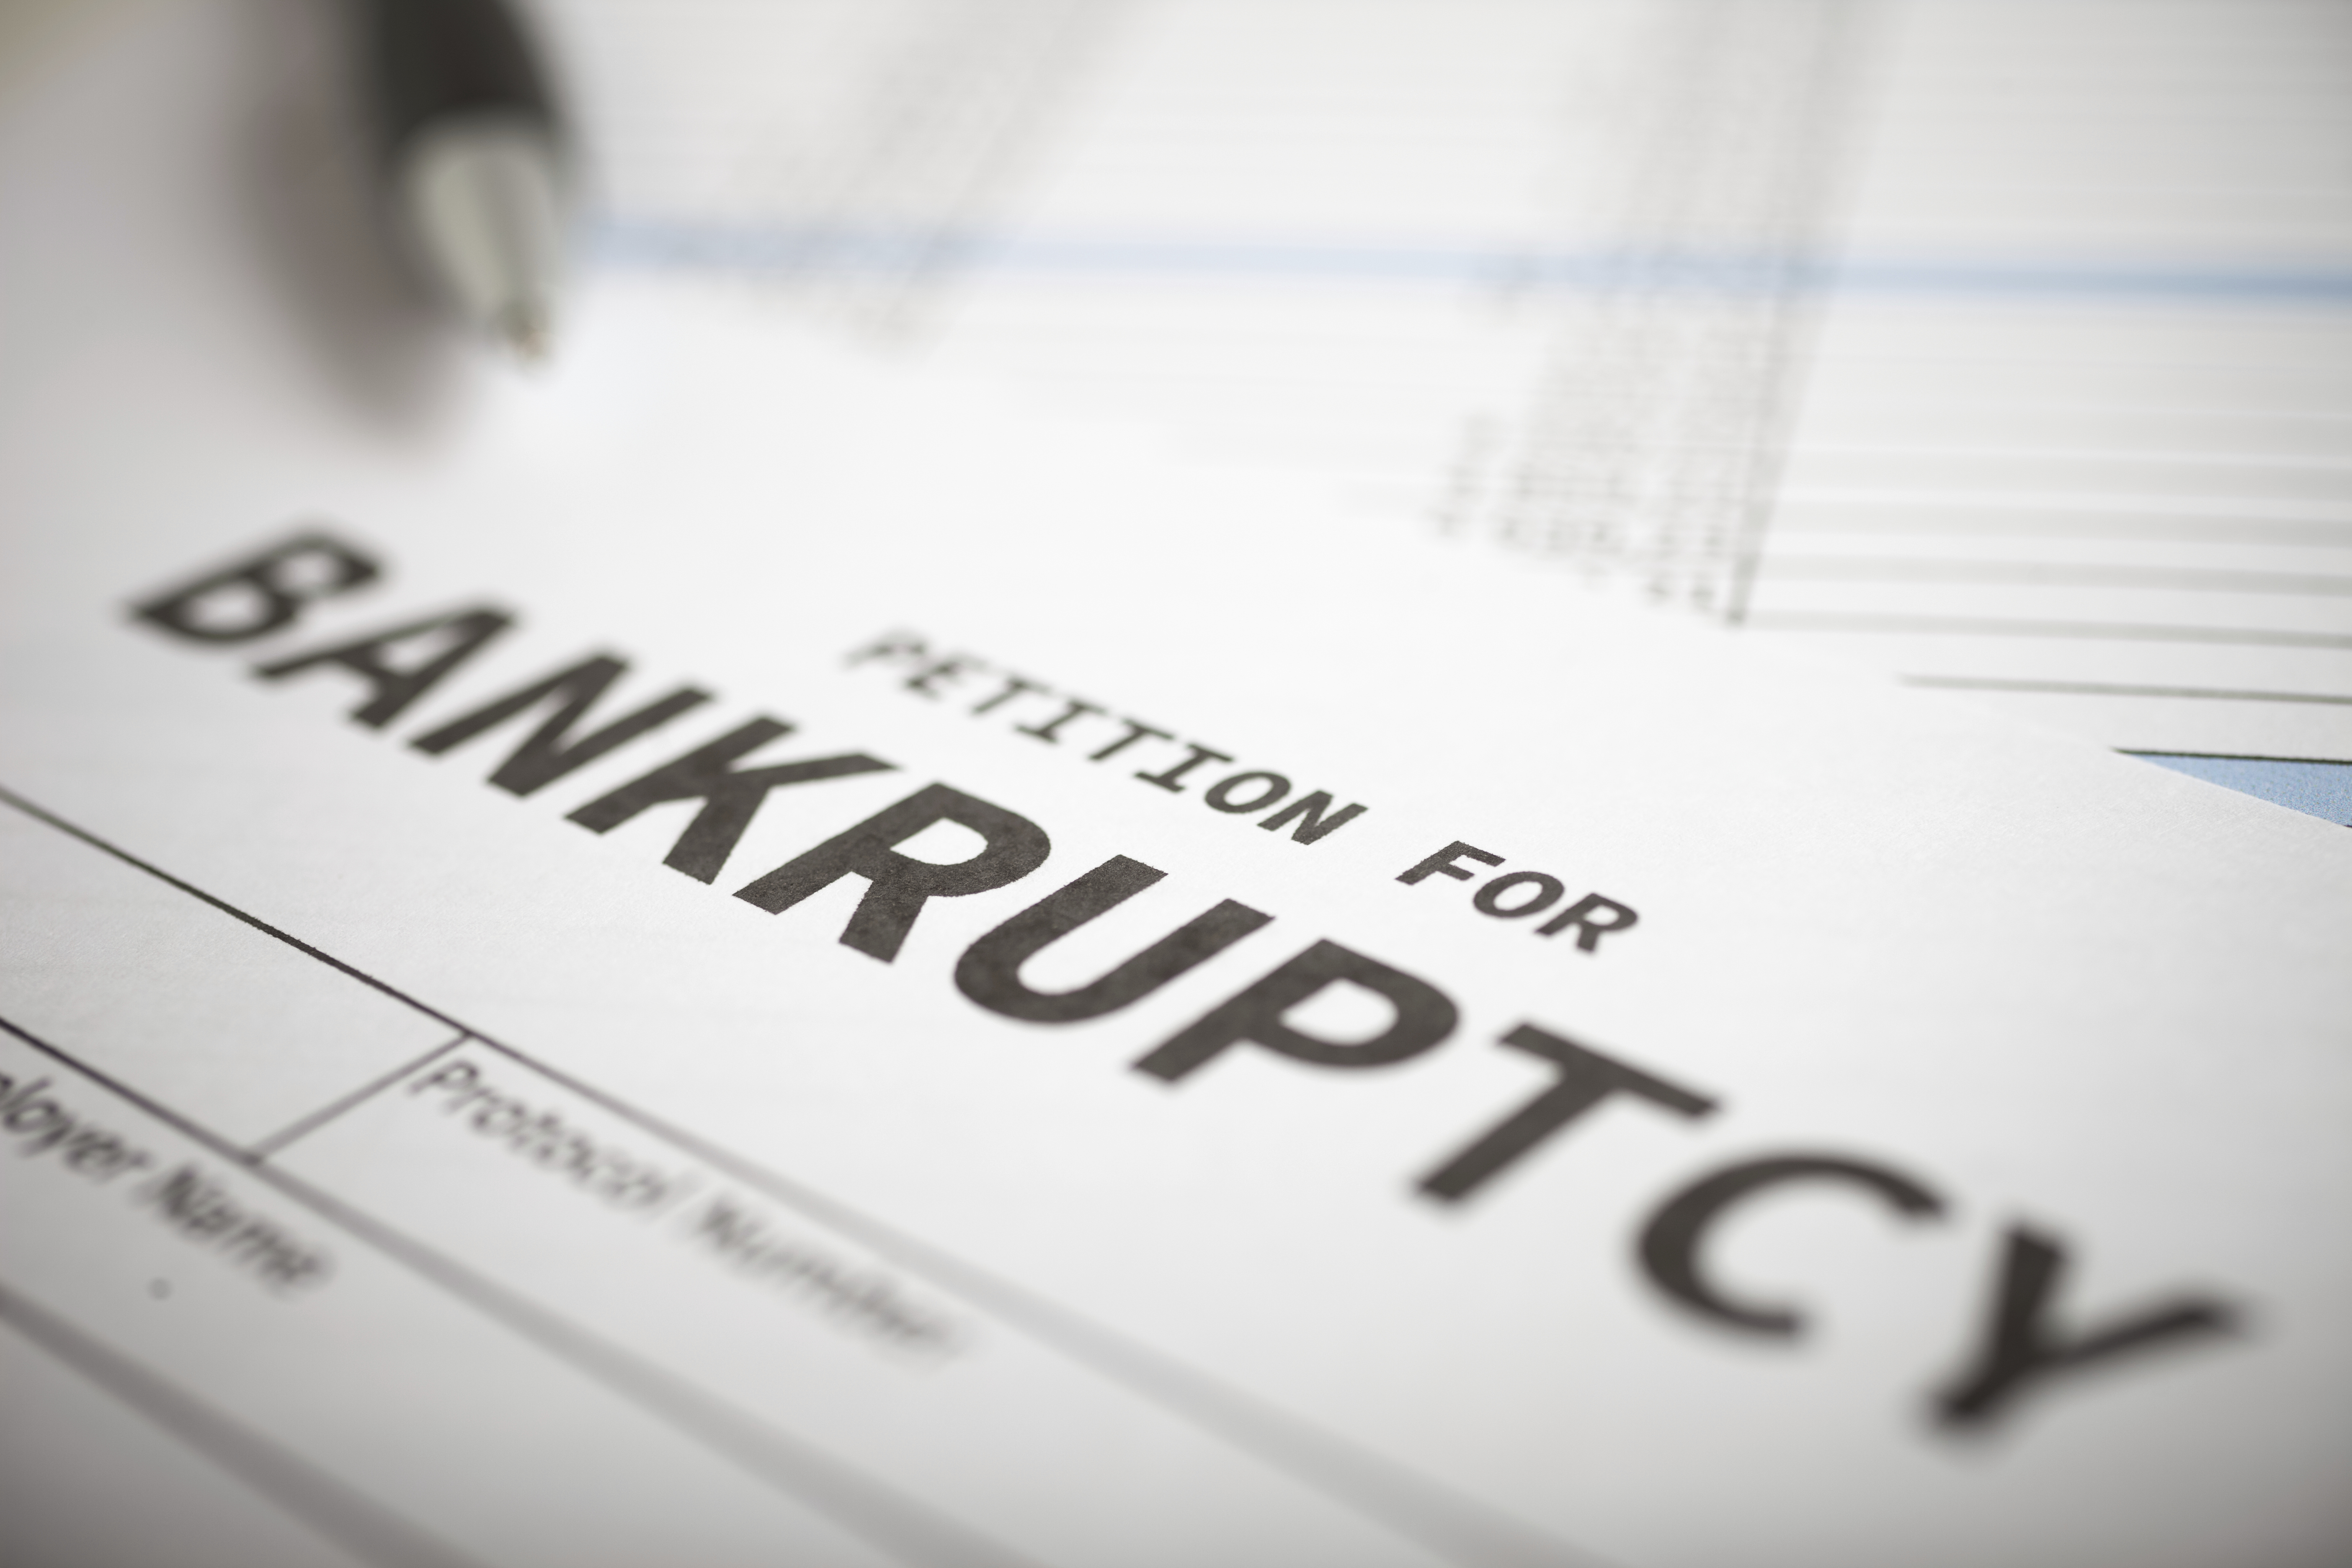 can i sell my house in a chapter 13 bankruptcy? | home guides | sf